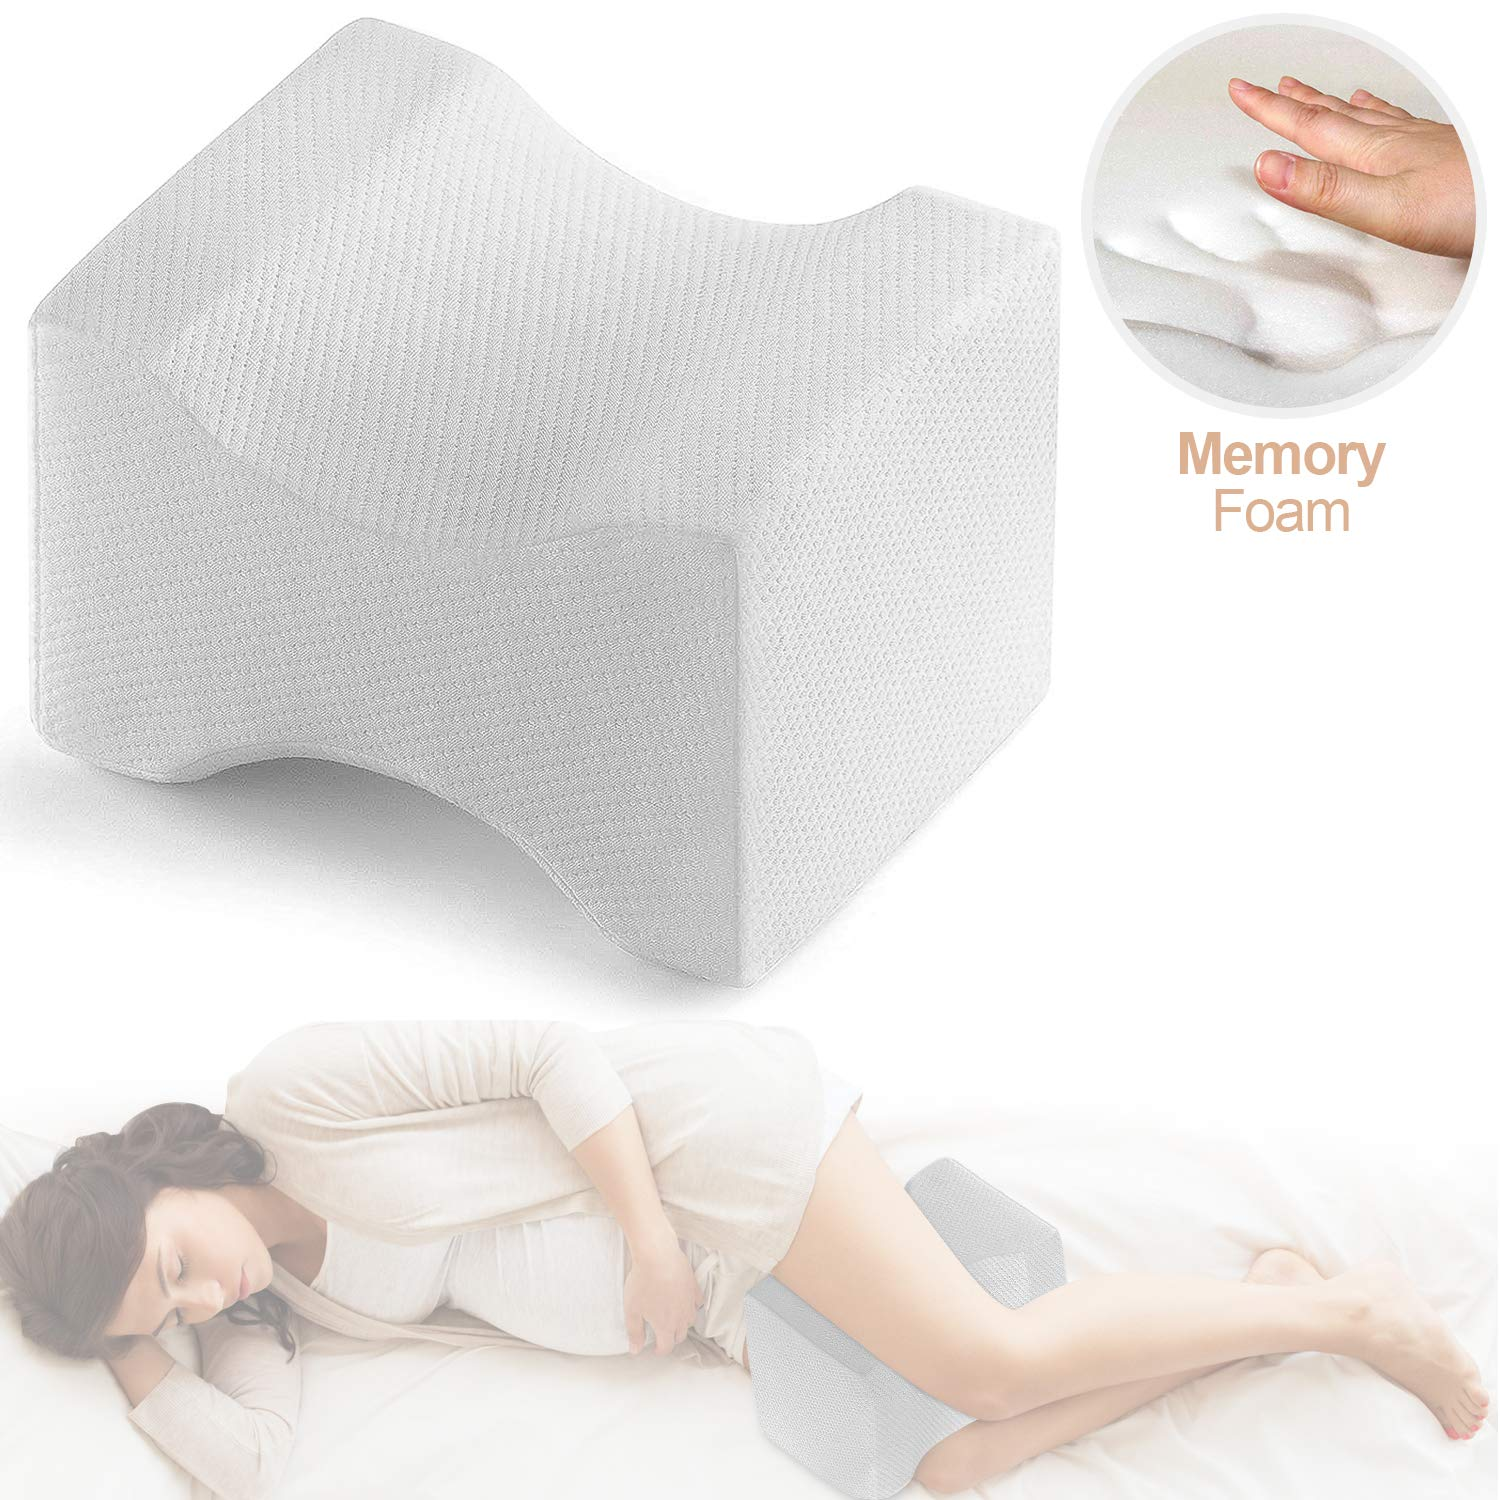 'Trademark Supplies' Leg Positioner Knee Pillow - Made from Memory Foam - Removable and Washable Cover - Promotes Better Sleep, Improve Blood Circulation & Proper Posture Alignment